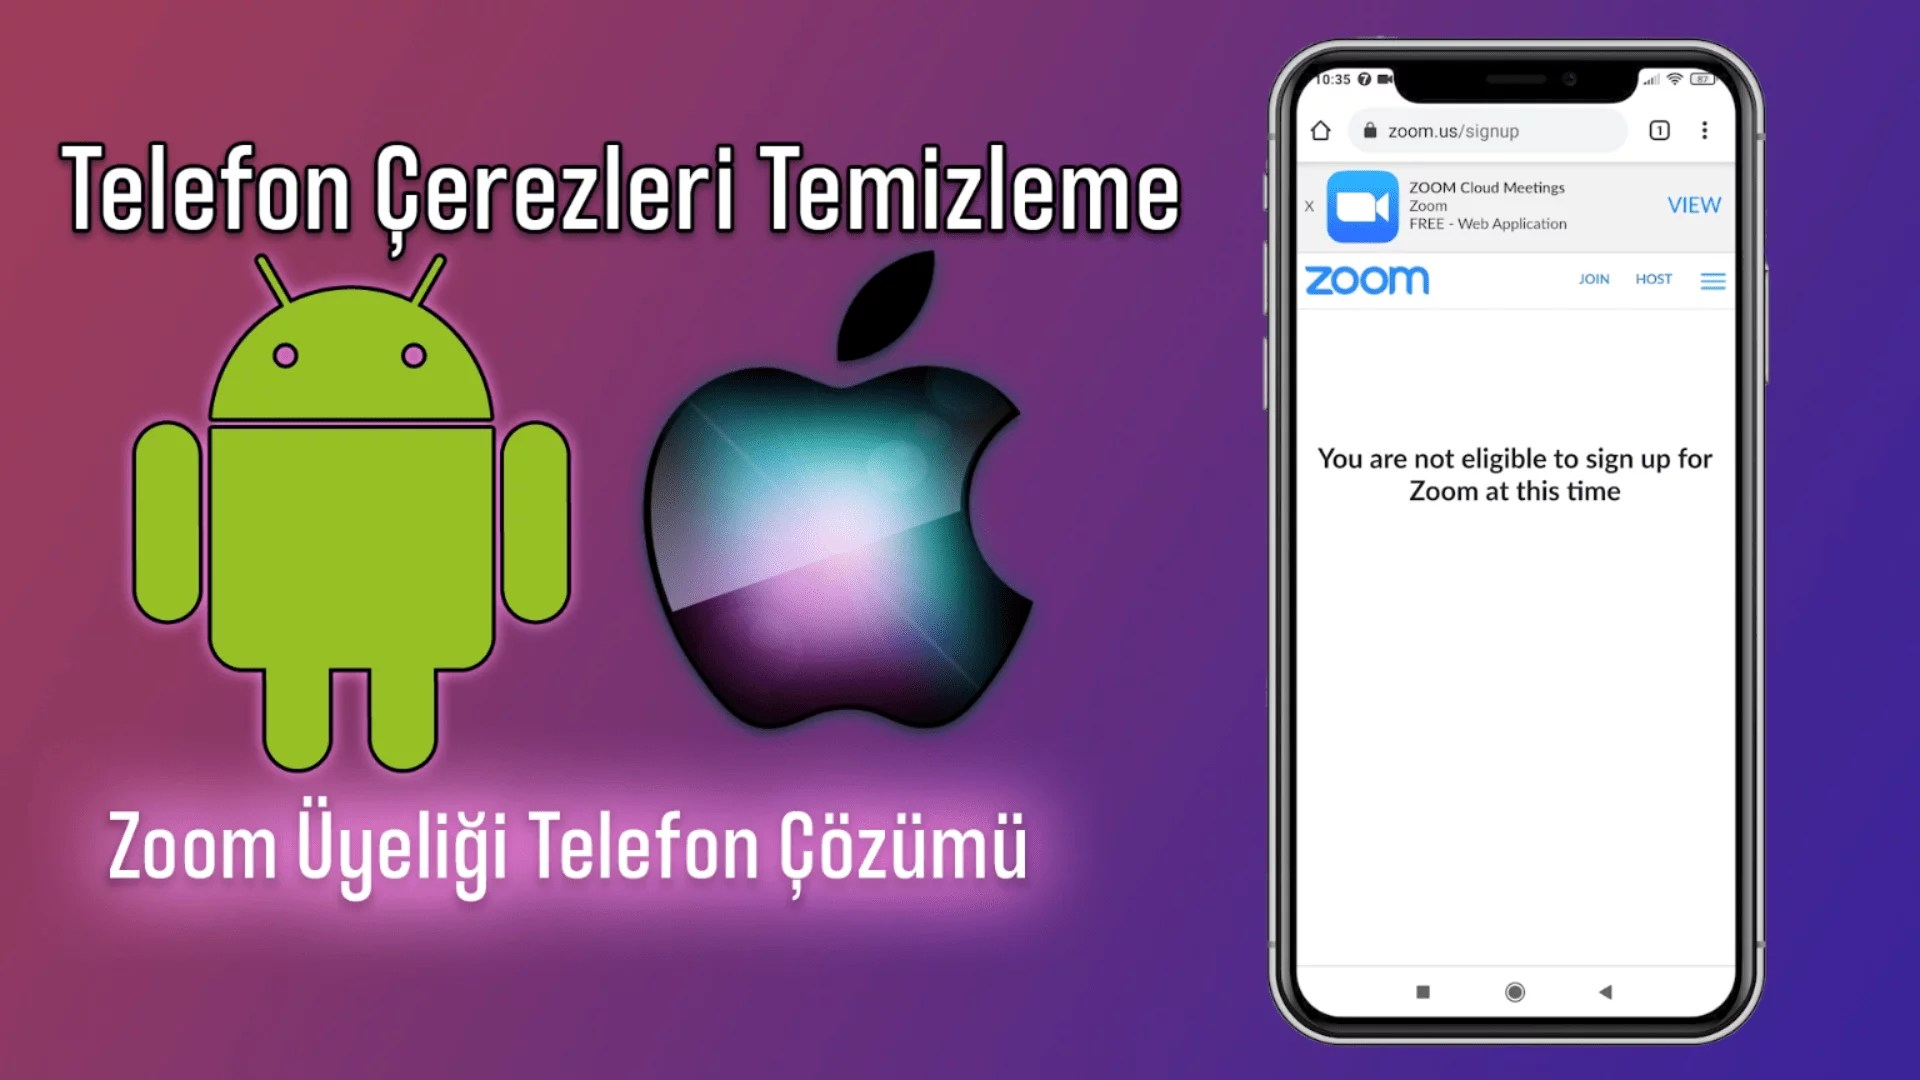 Telefon Çerezlerini Temizleme ! You are not eligible to sign up for Zoom at this time